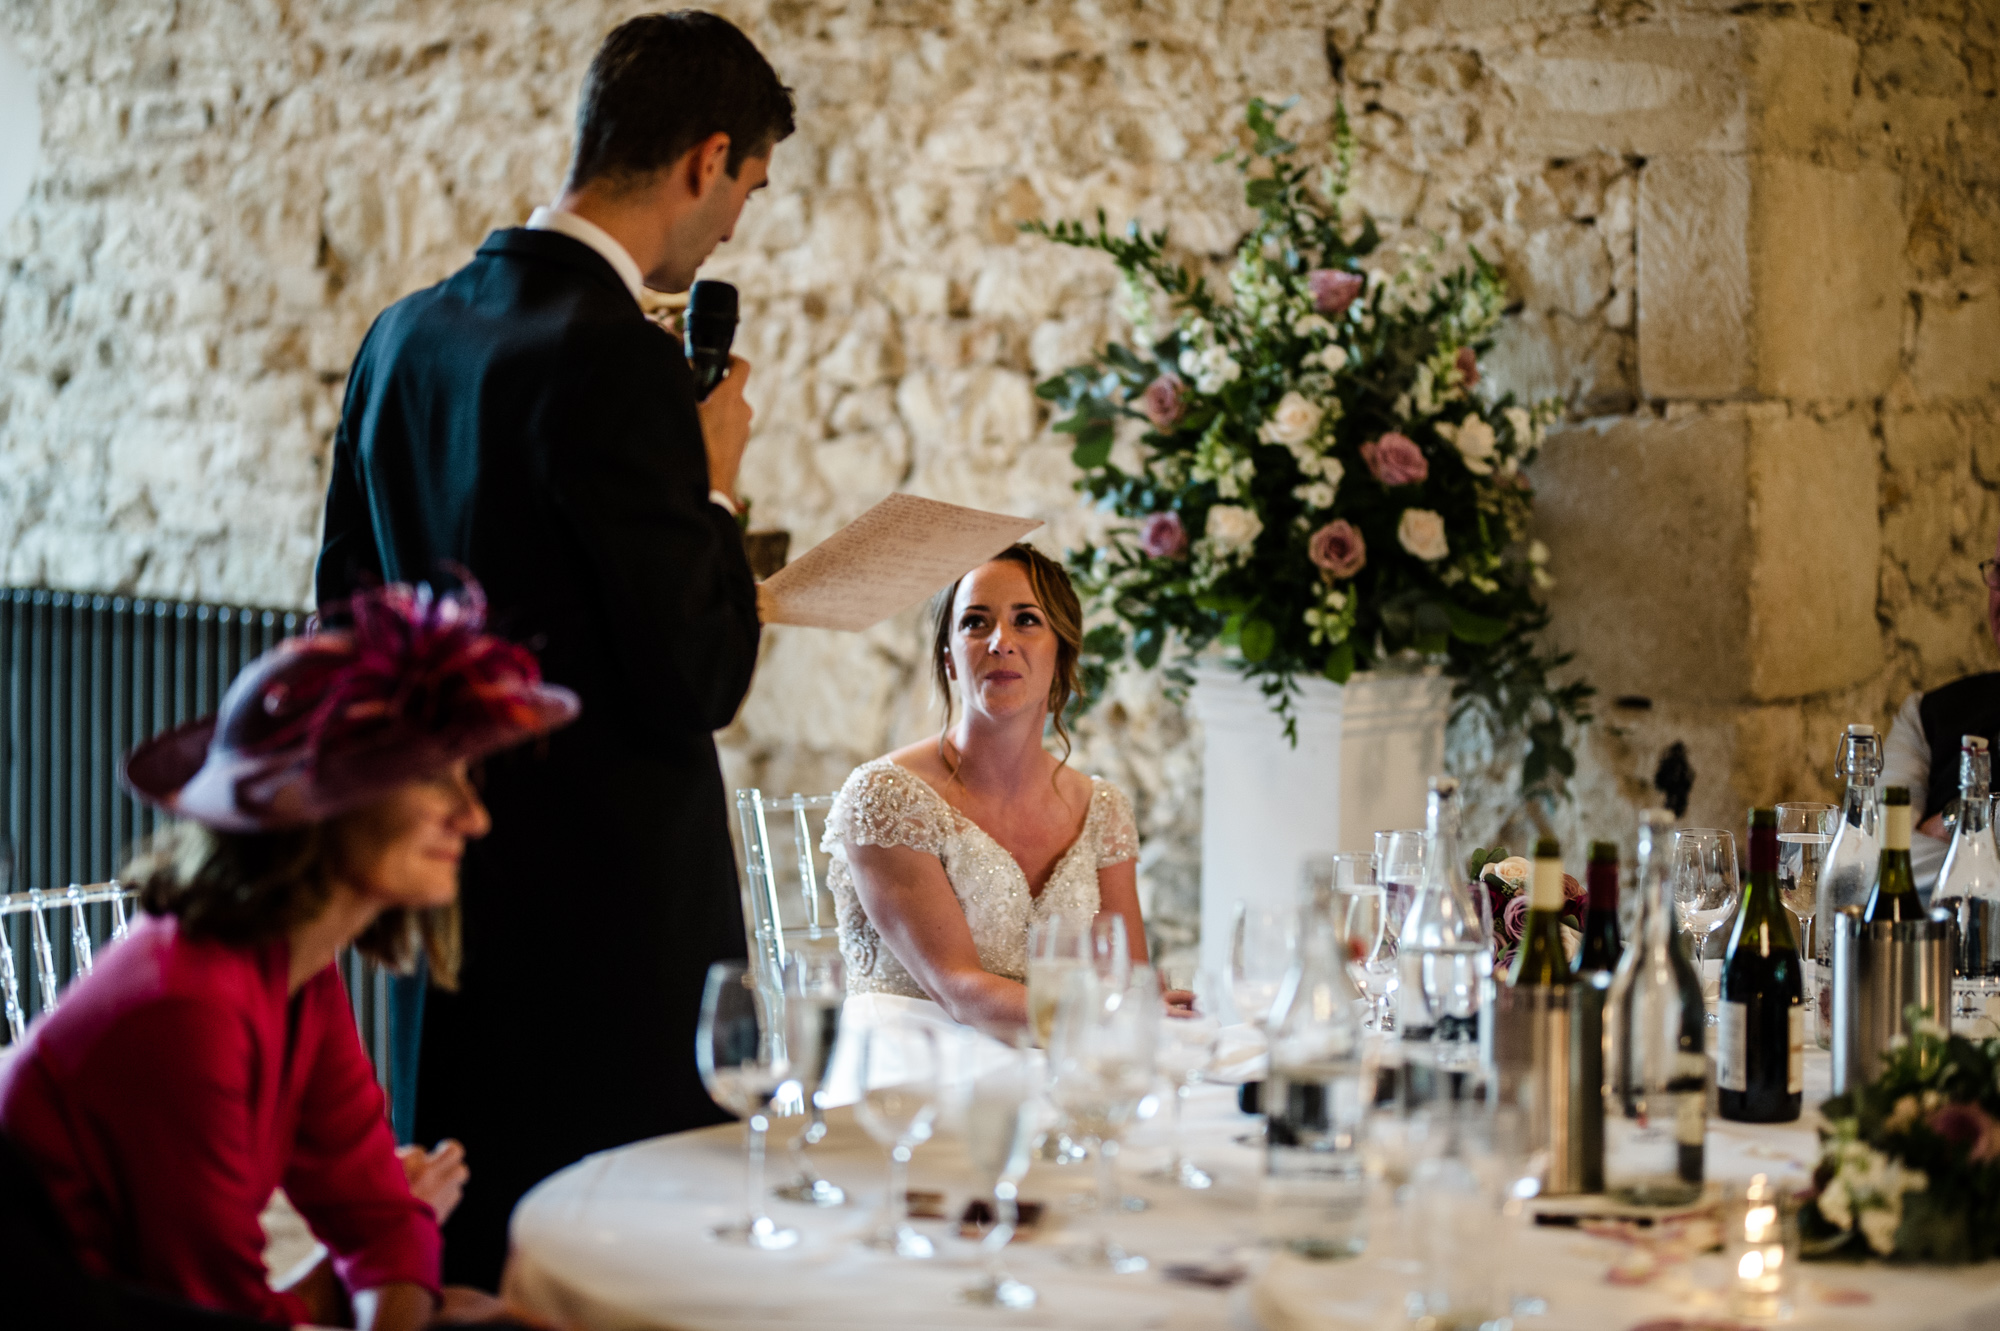 Notley Barn Wedding 26.10.18 28.jpg